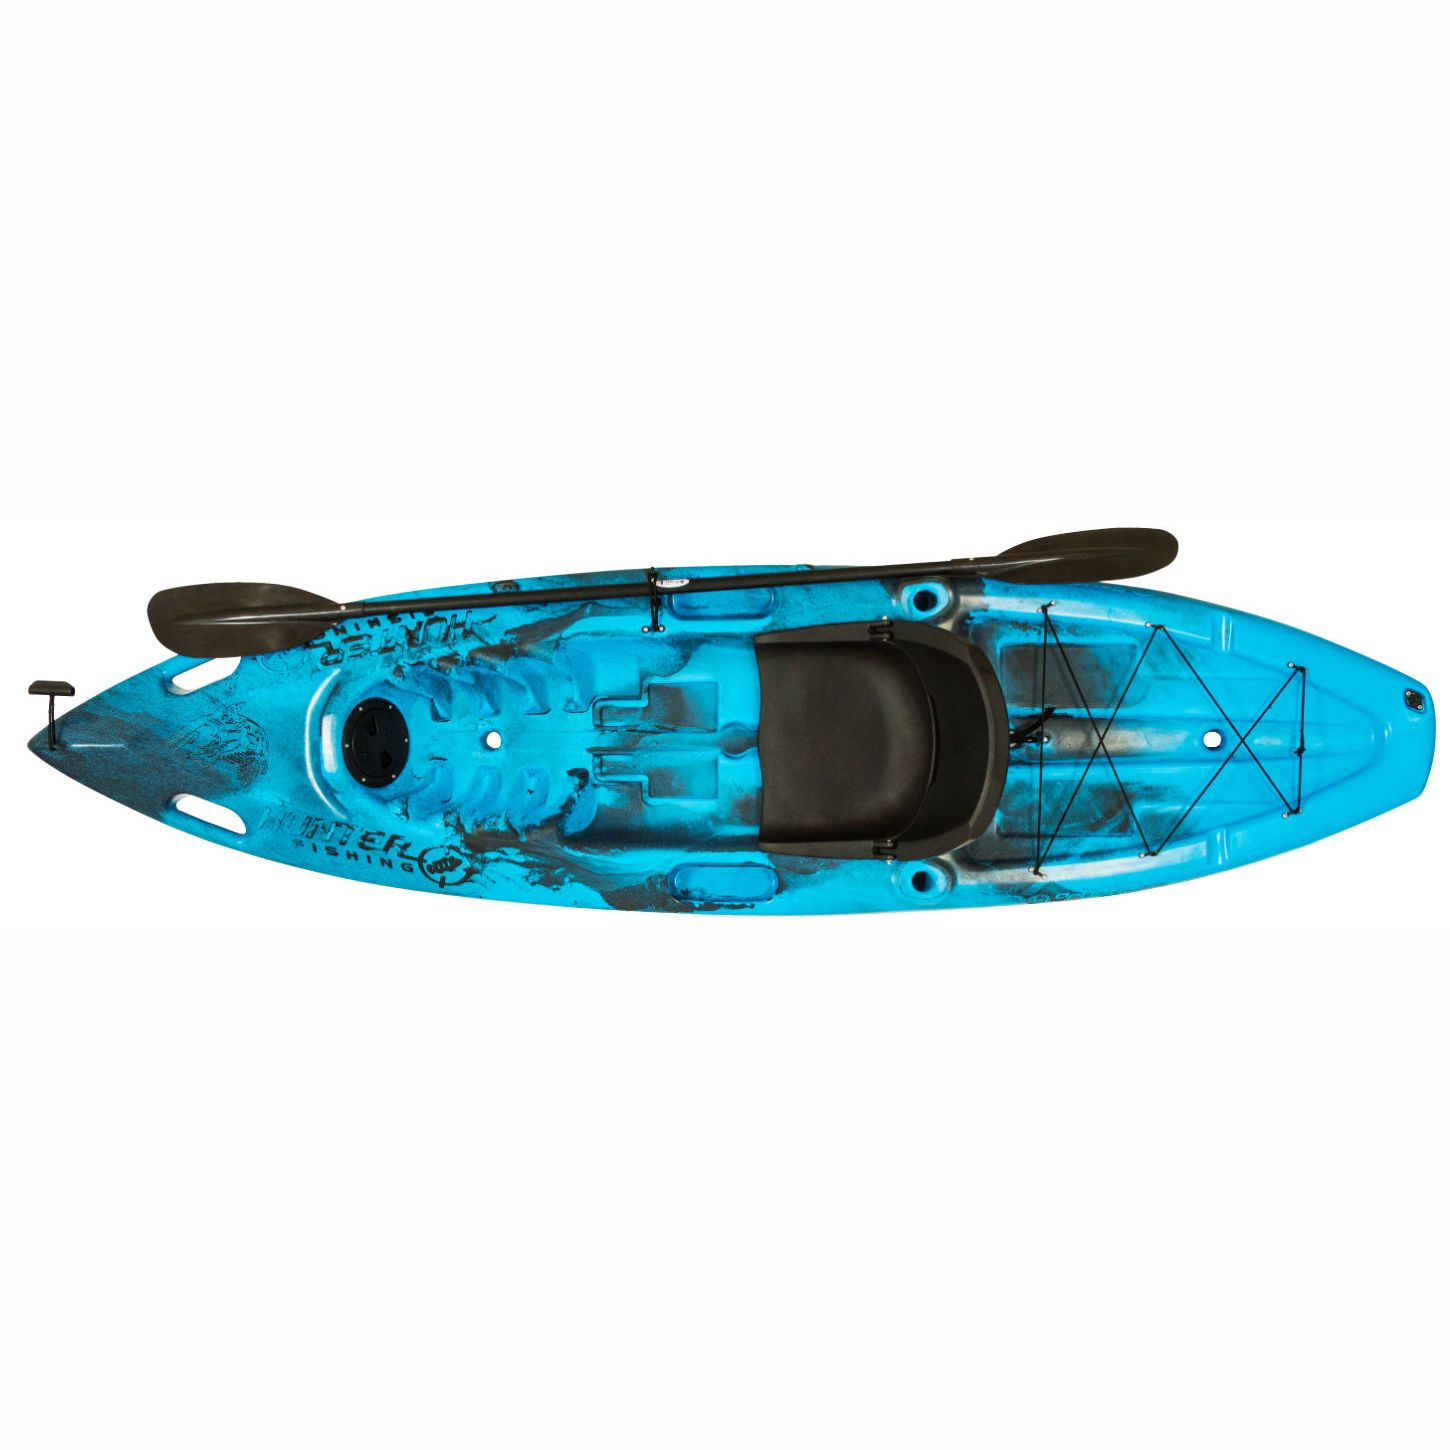 Caiaque Brudden Hunter Fishing Up - Azul com Preto